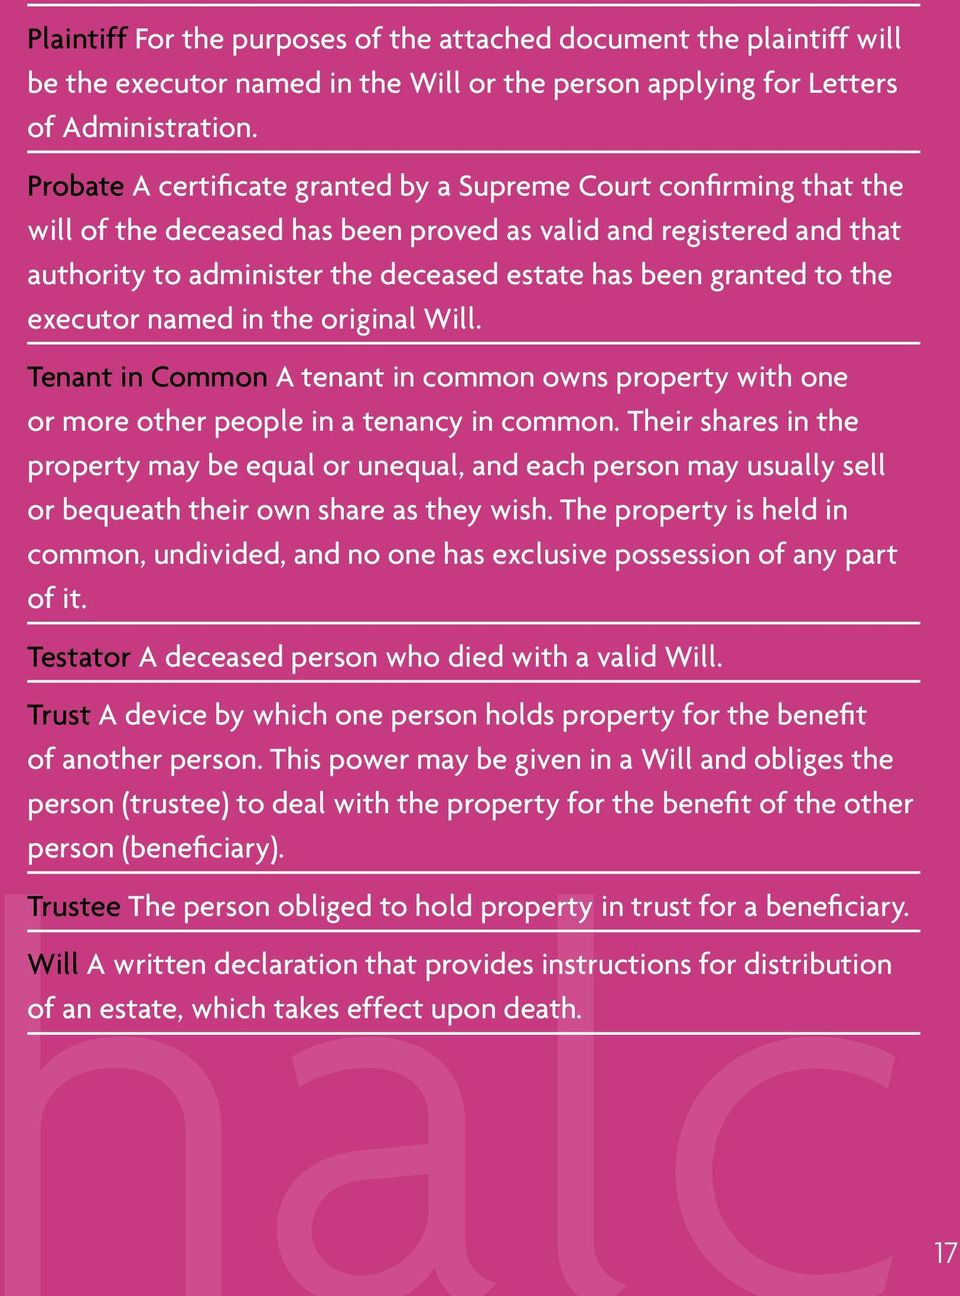 to the executor named in the original Will. Tenant in Common A tenant in common owns property with one or more other people in a tenancy in common.